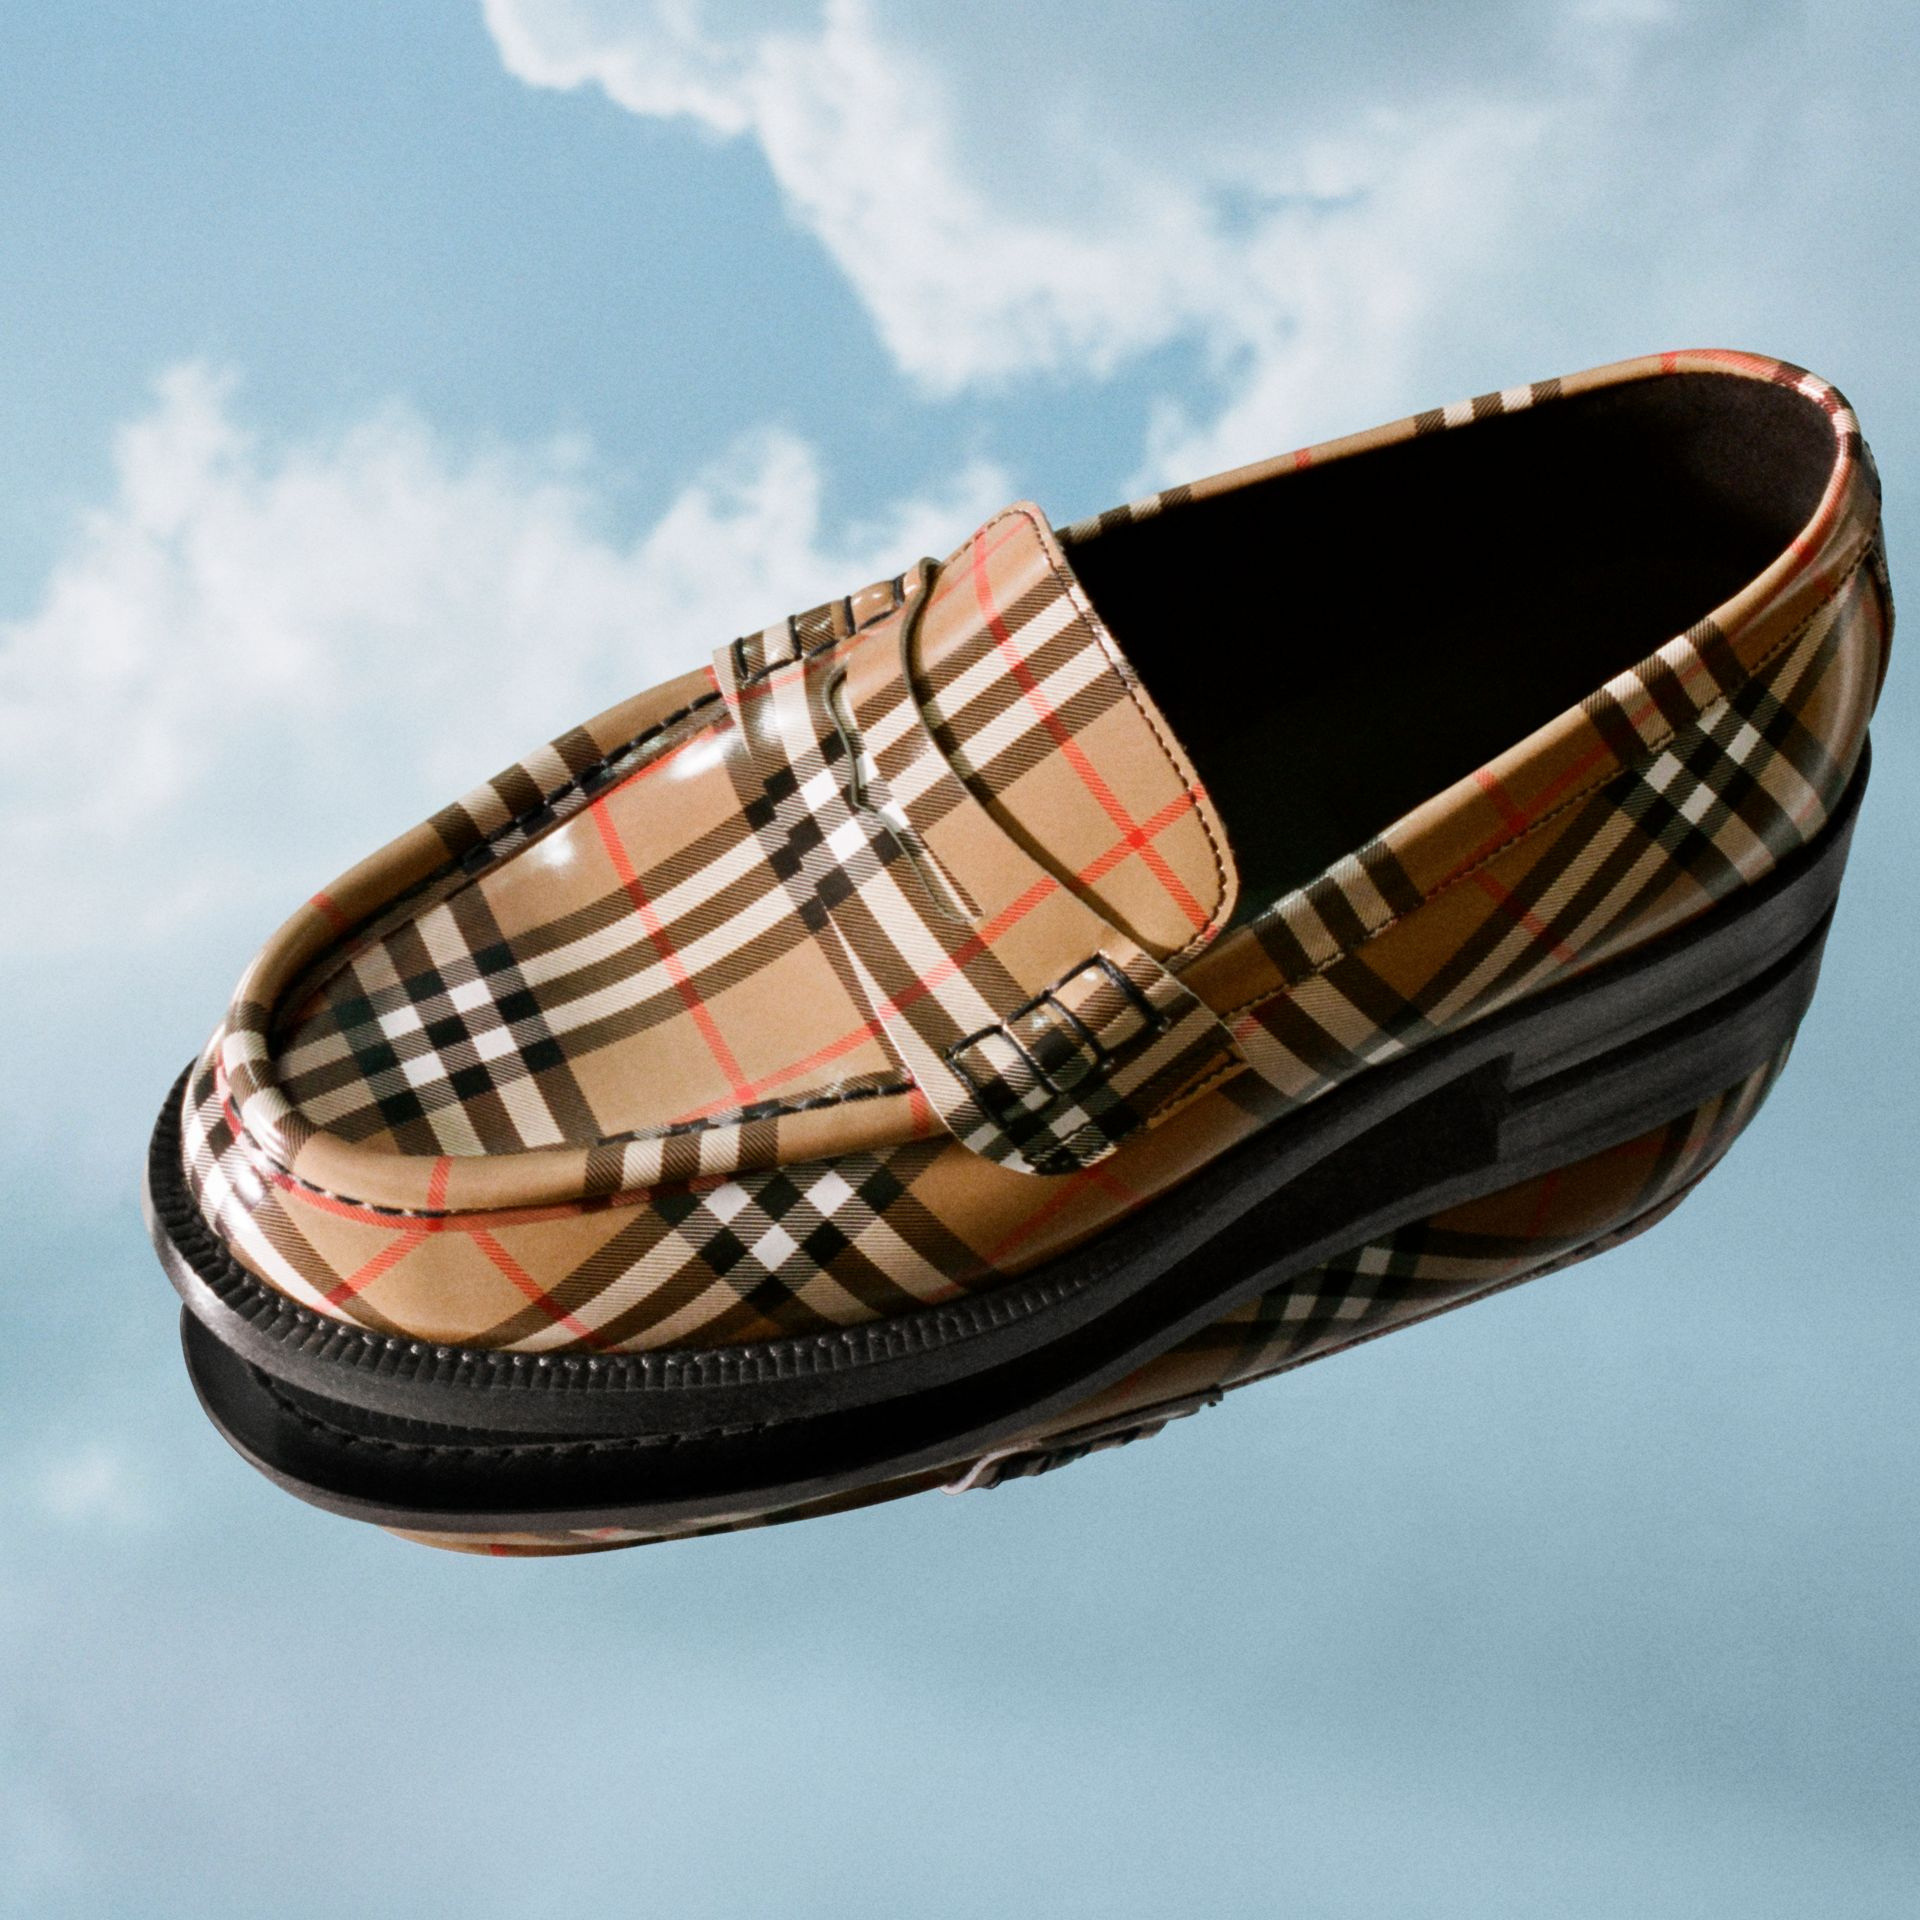 Gosha x Burberry Check Leather Loafers in Antique Yellow - Men | Burberry Hong Kong - gallery image 1